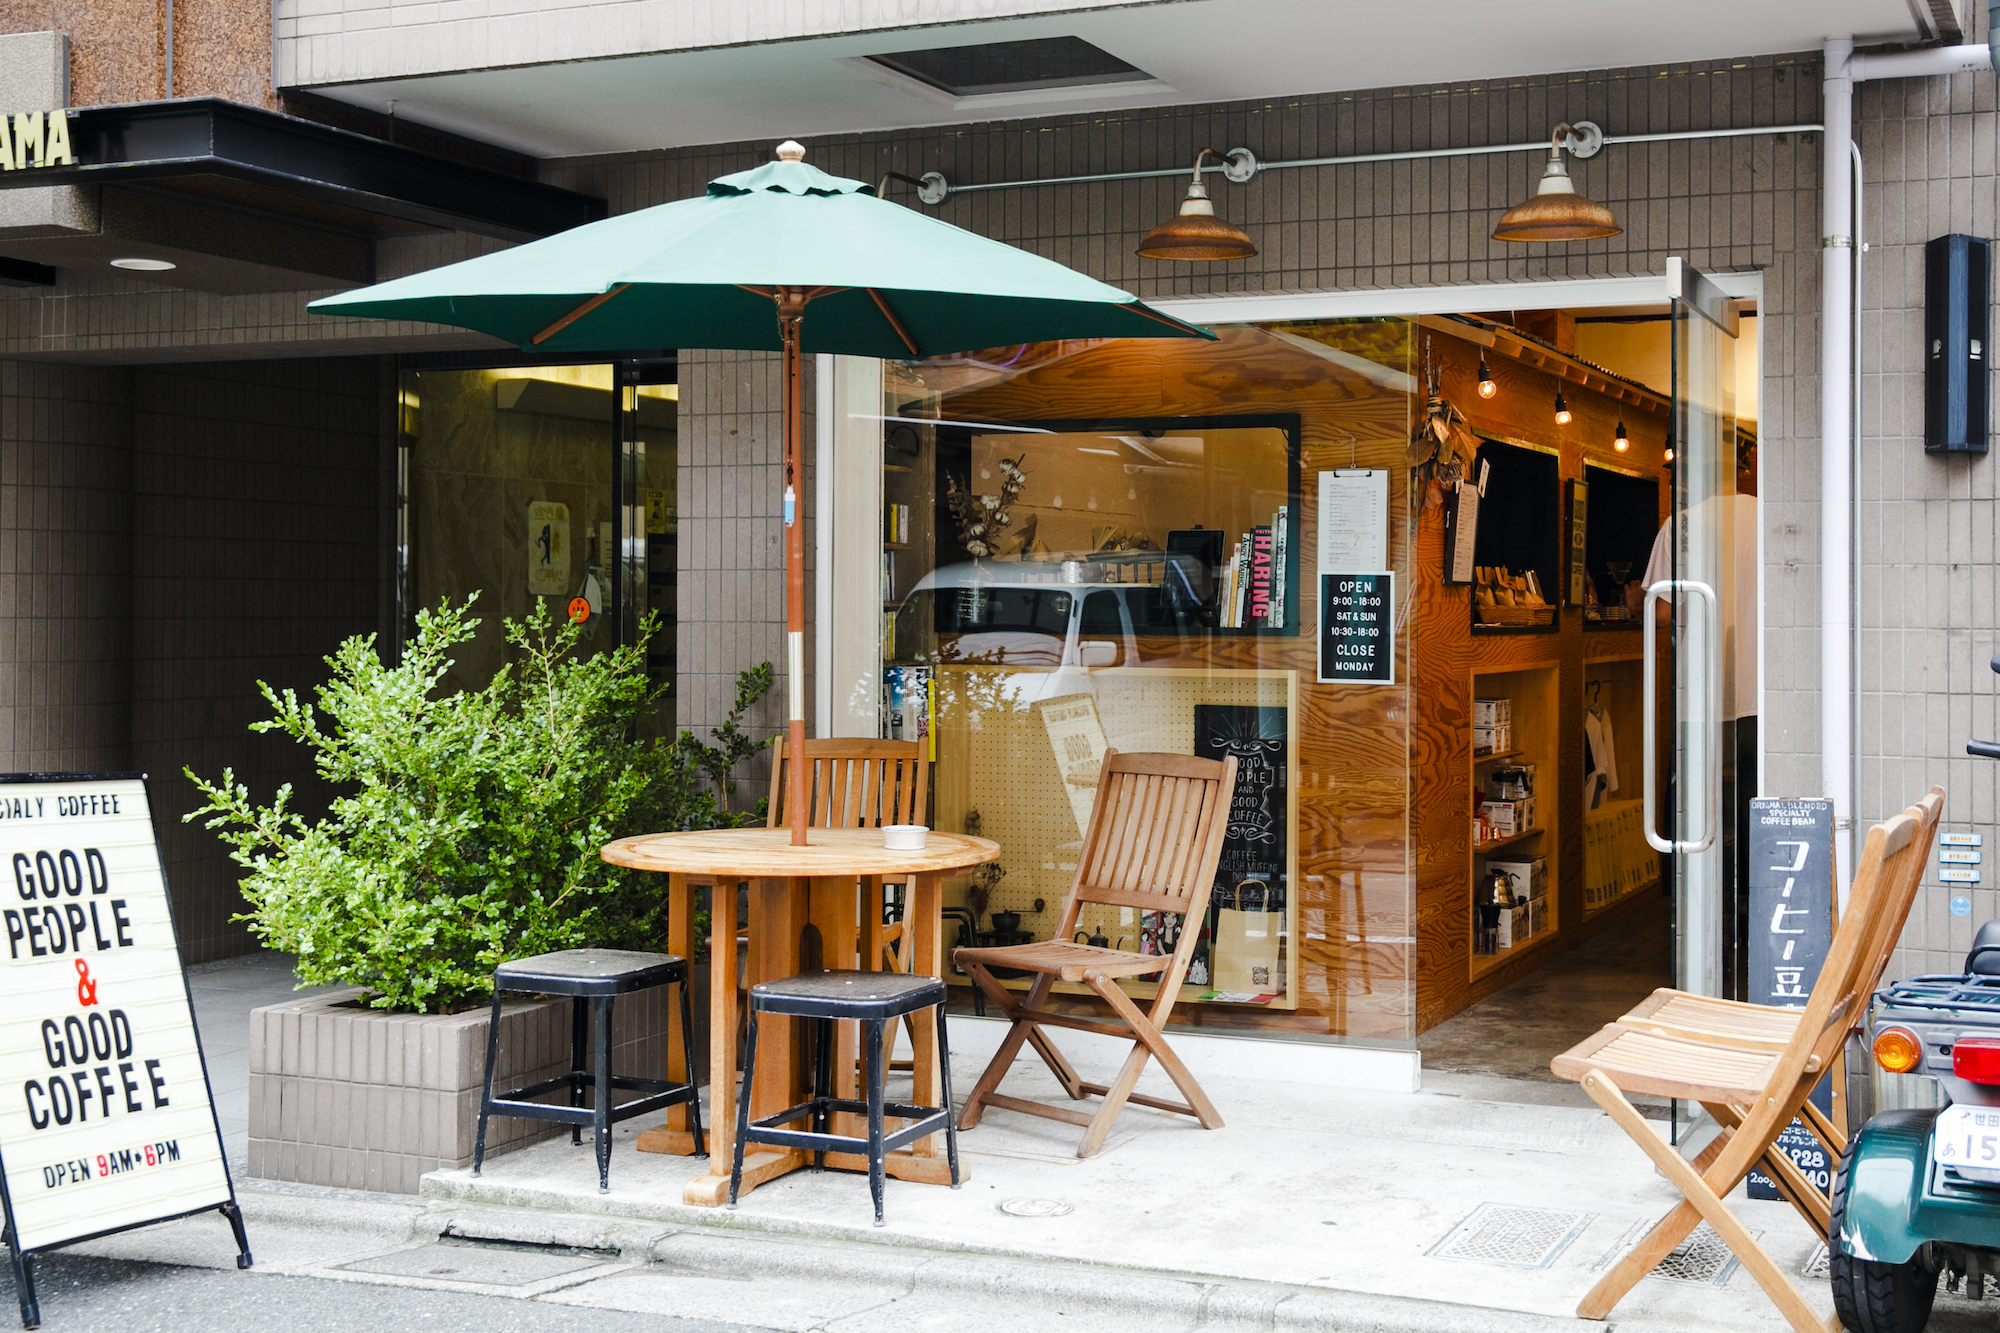 Good People & Good Coffee | Time Out Tokyo